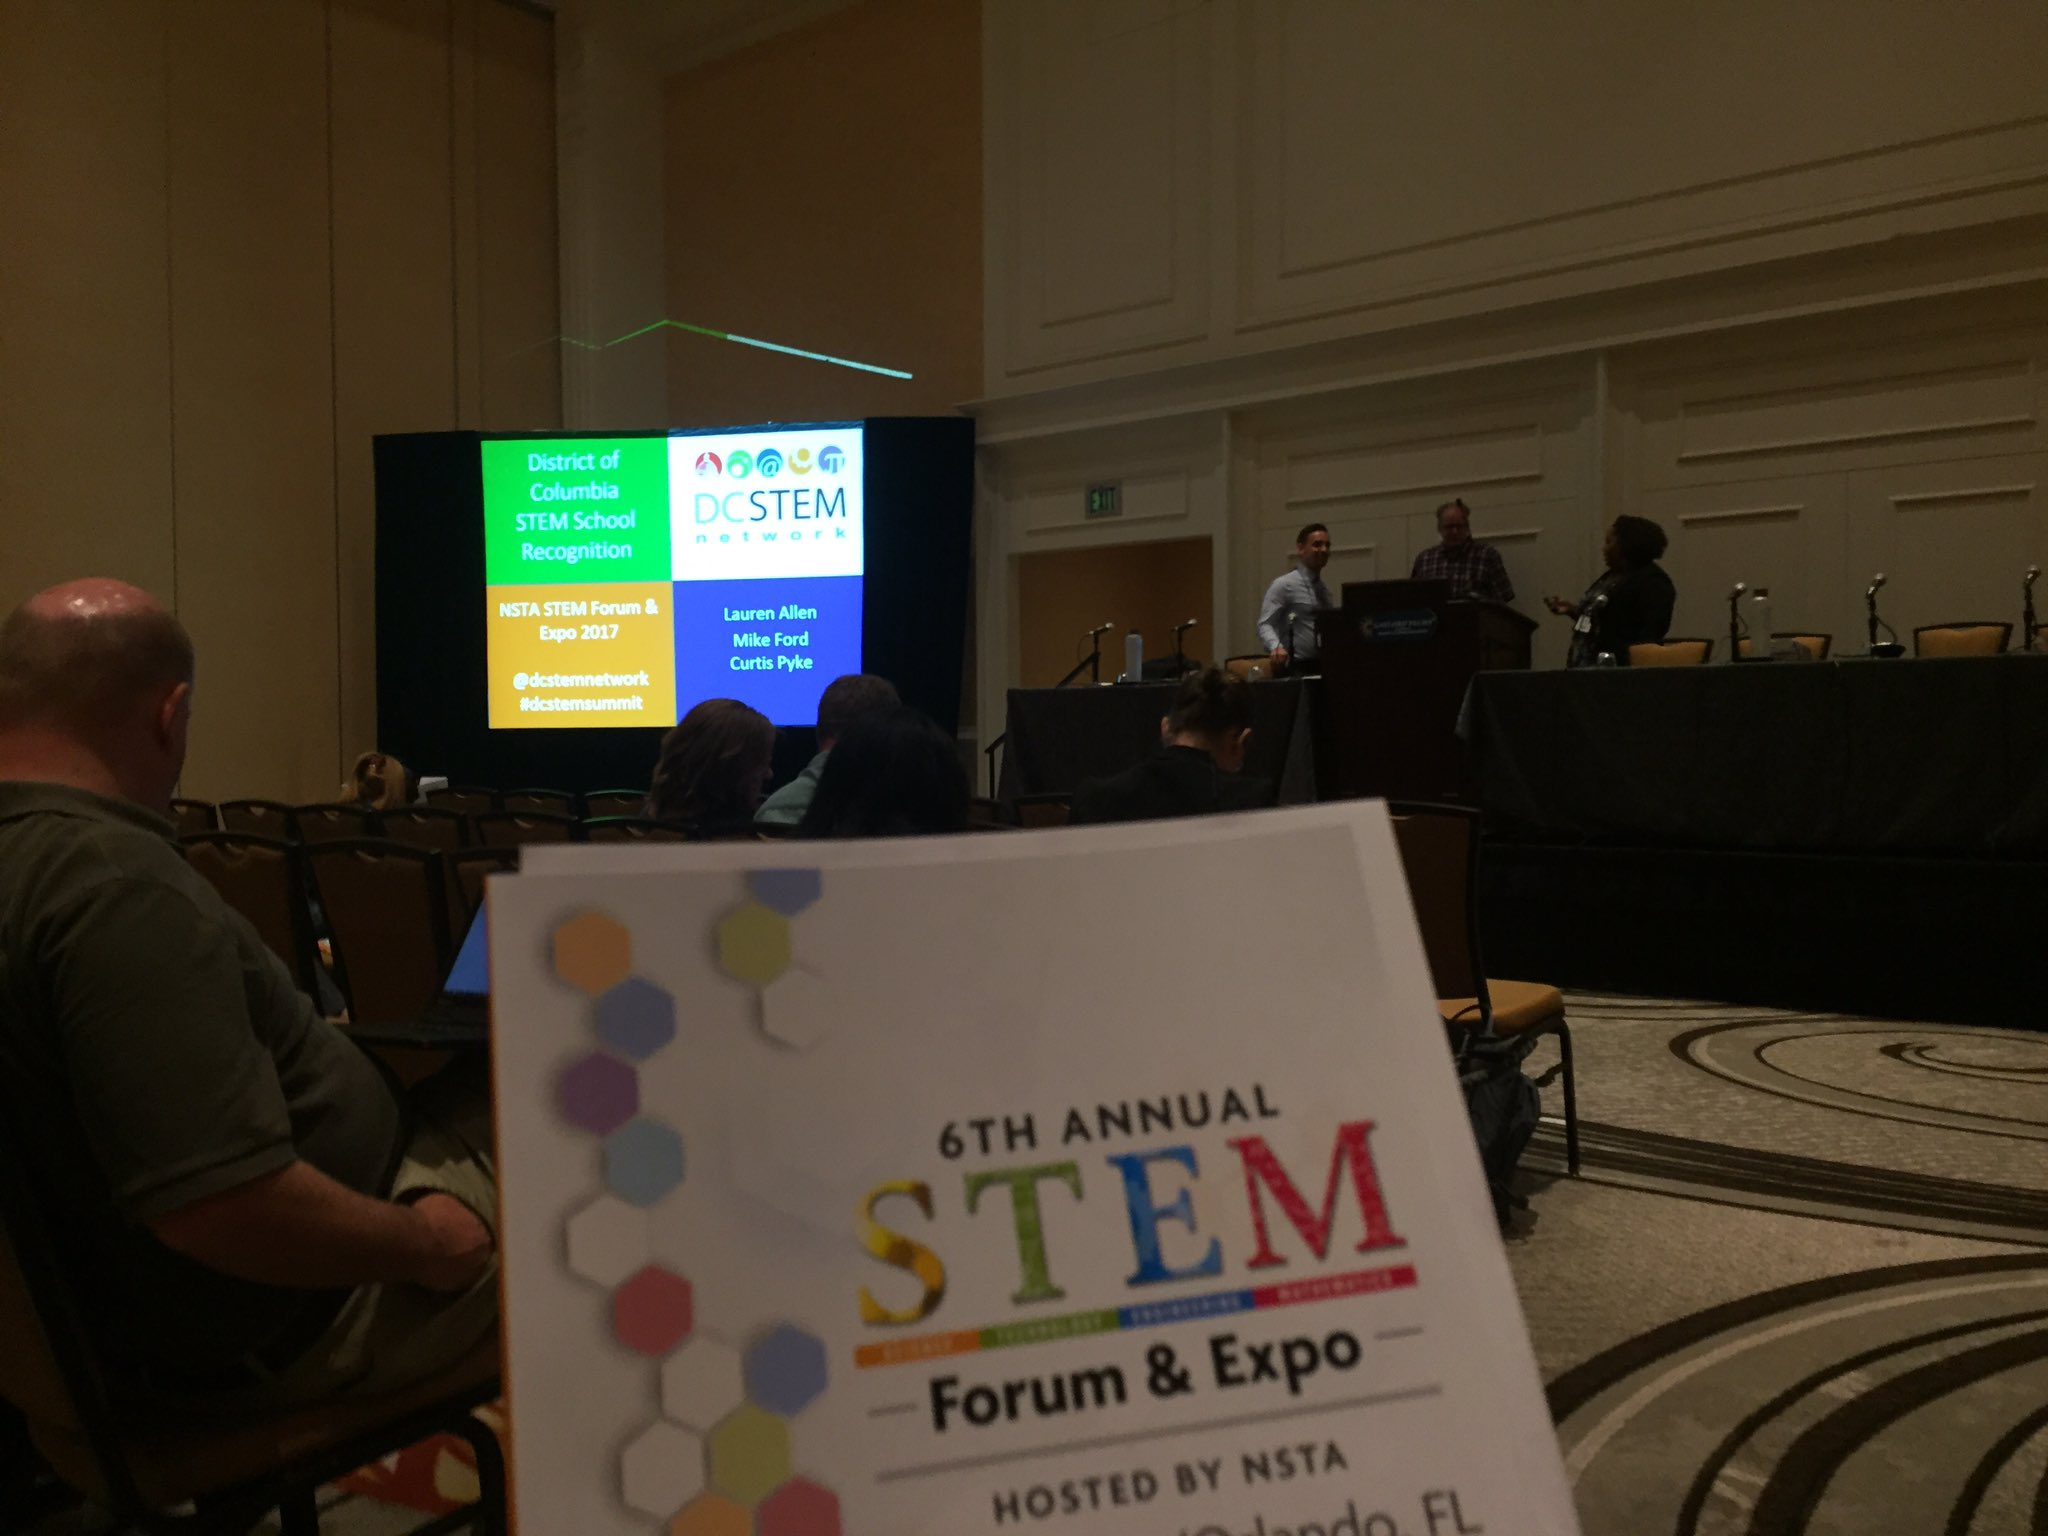 STEM School recognition #NSTA17 https://t.co/ggs5g4YhPr